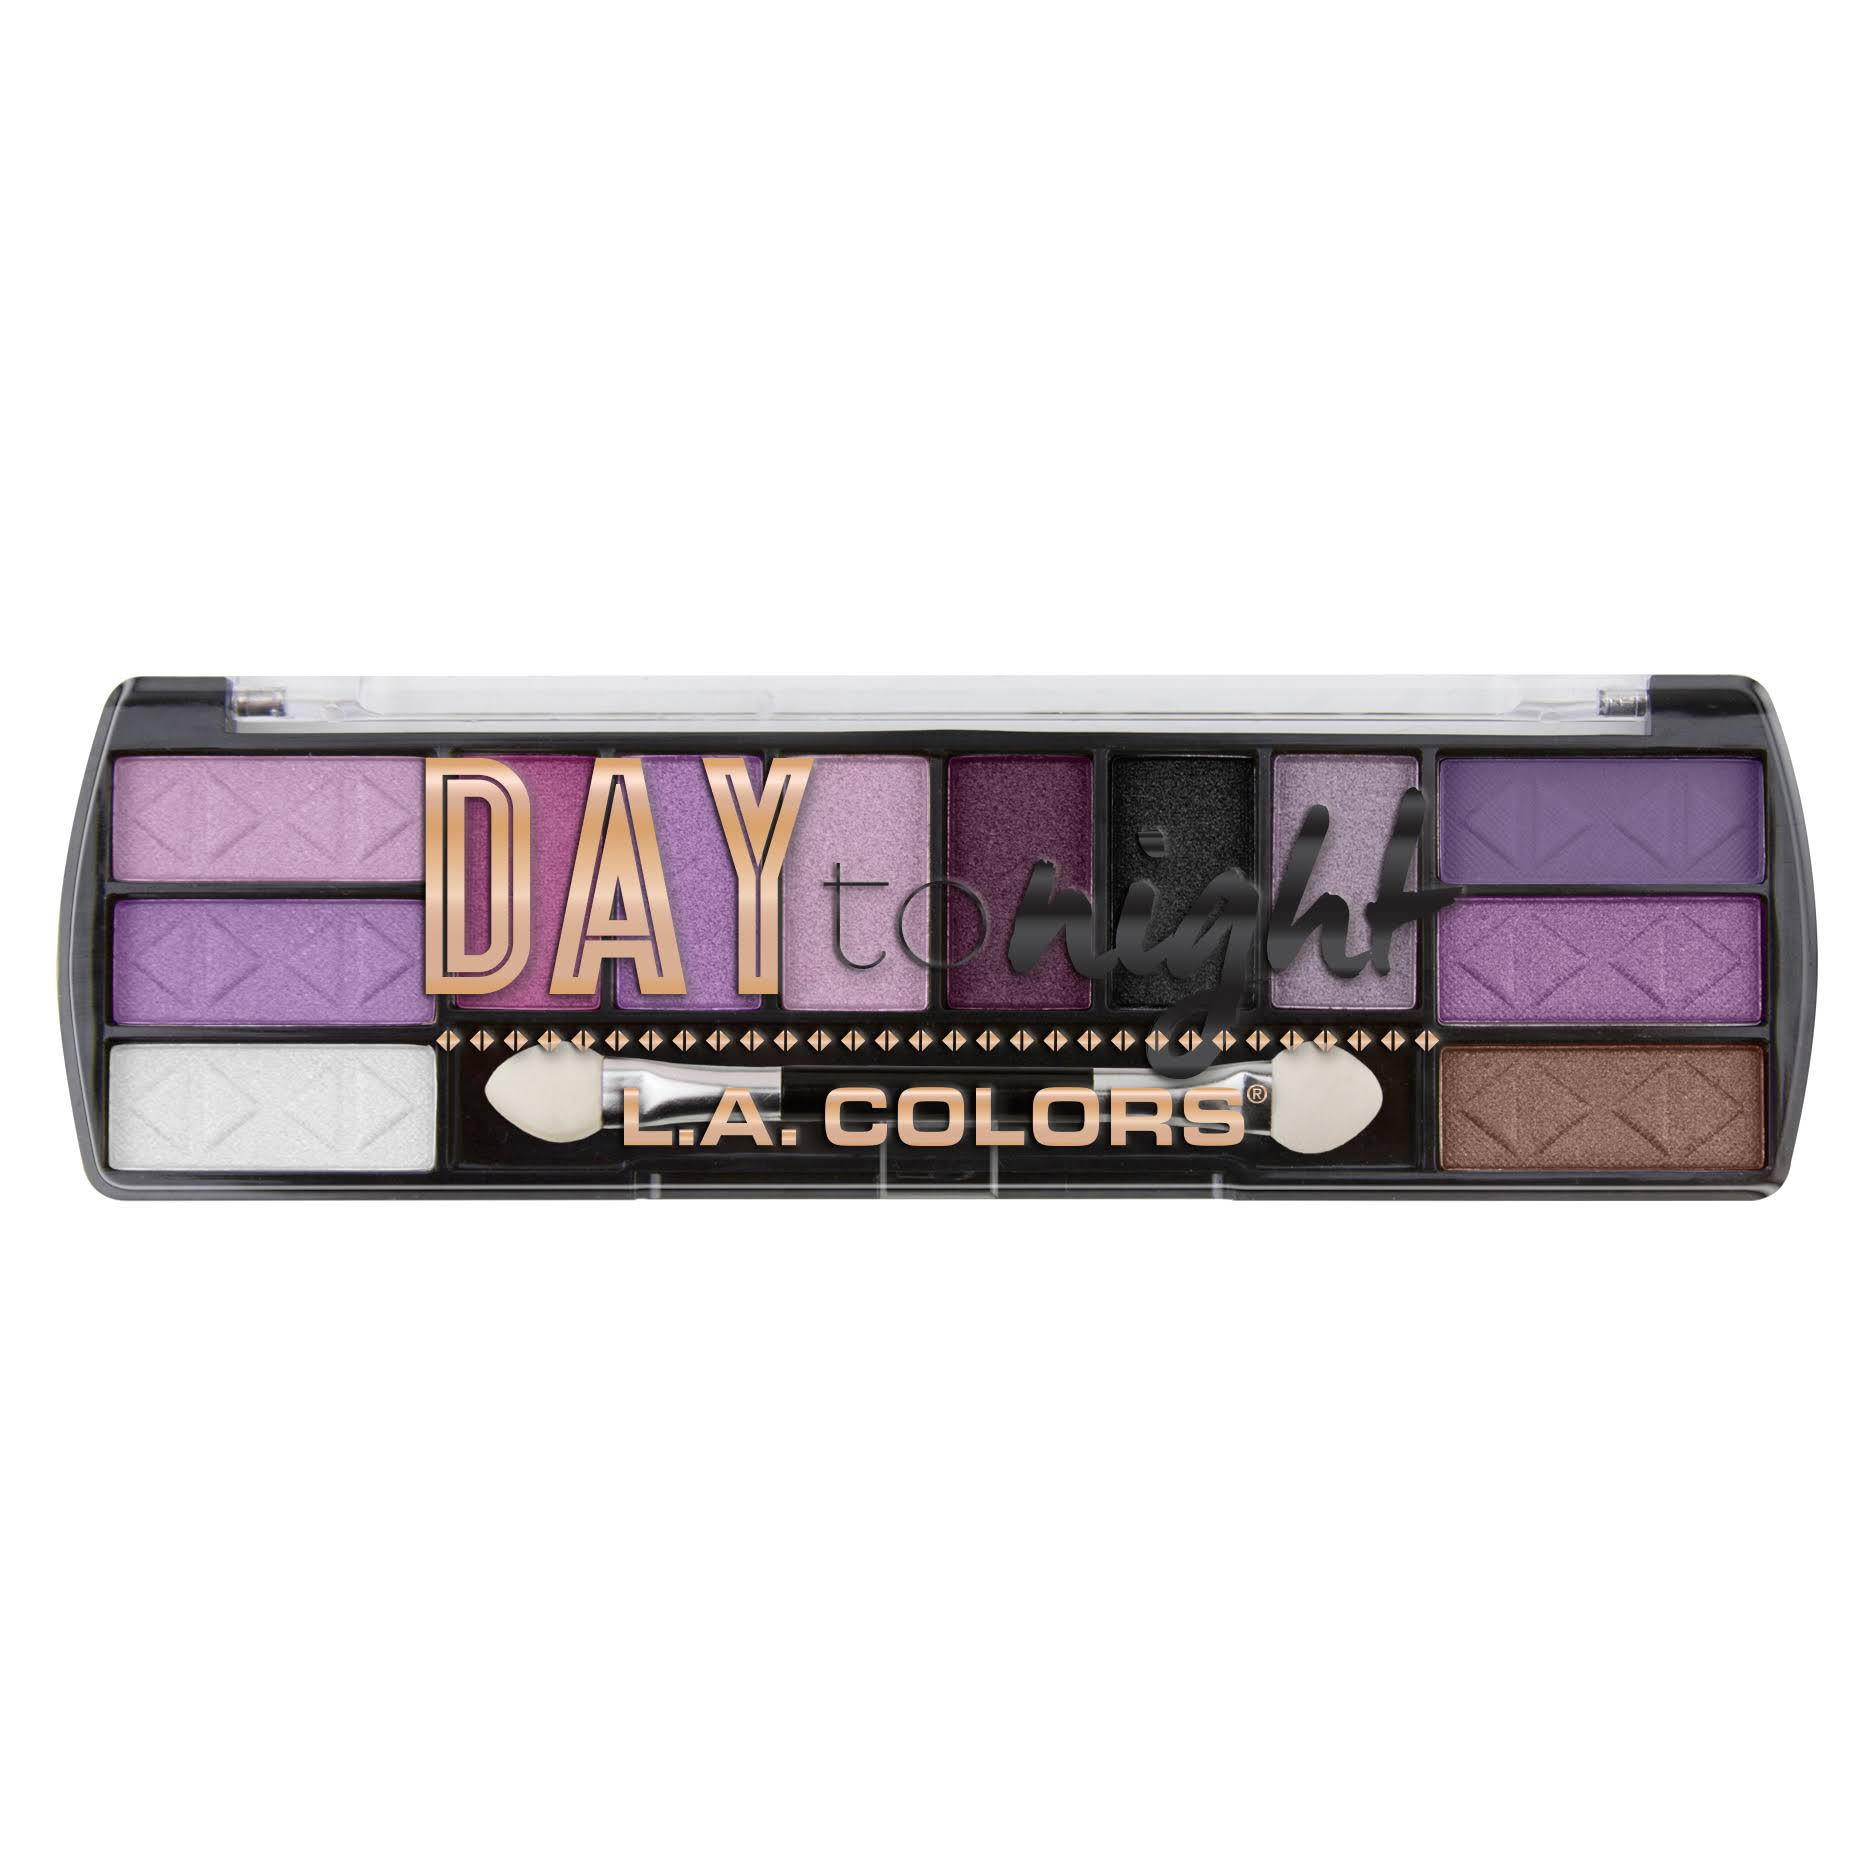 La Colours Day To Night­ Eyeshadow Palette - ­Twilight